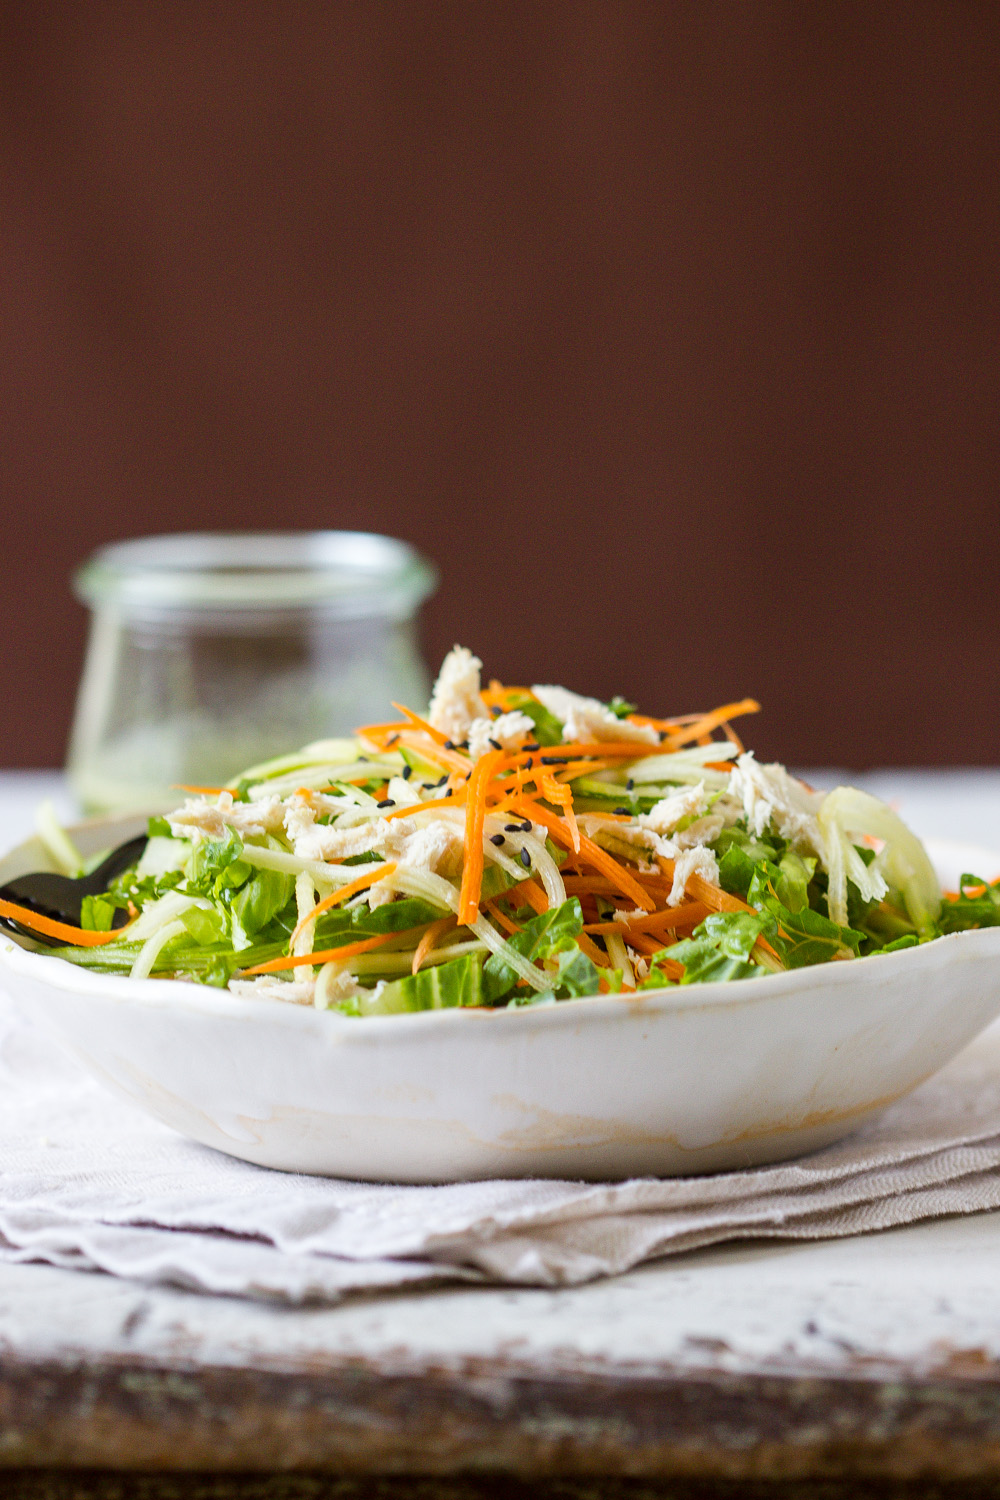 CHICKEN SLAW WITH SPICY CILANTRO DRESSING